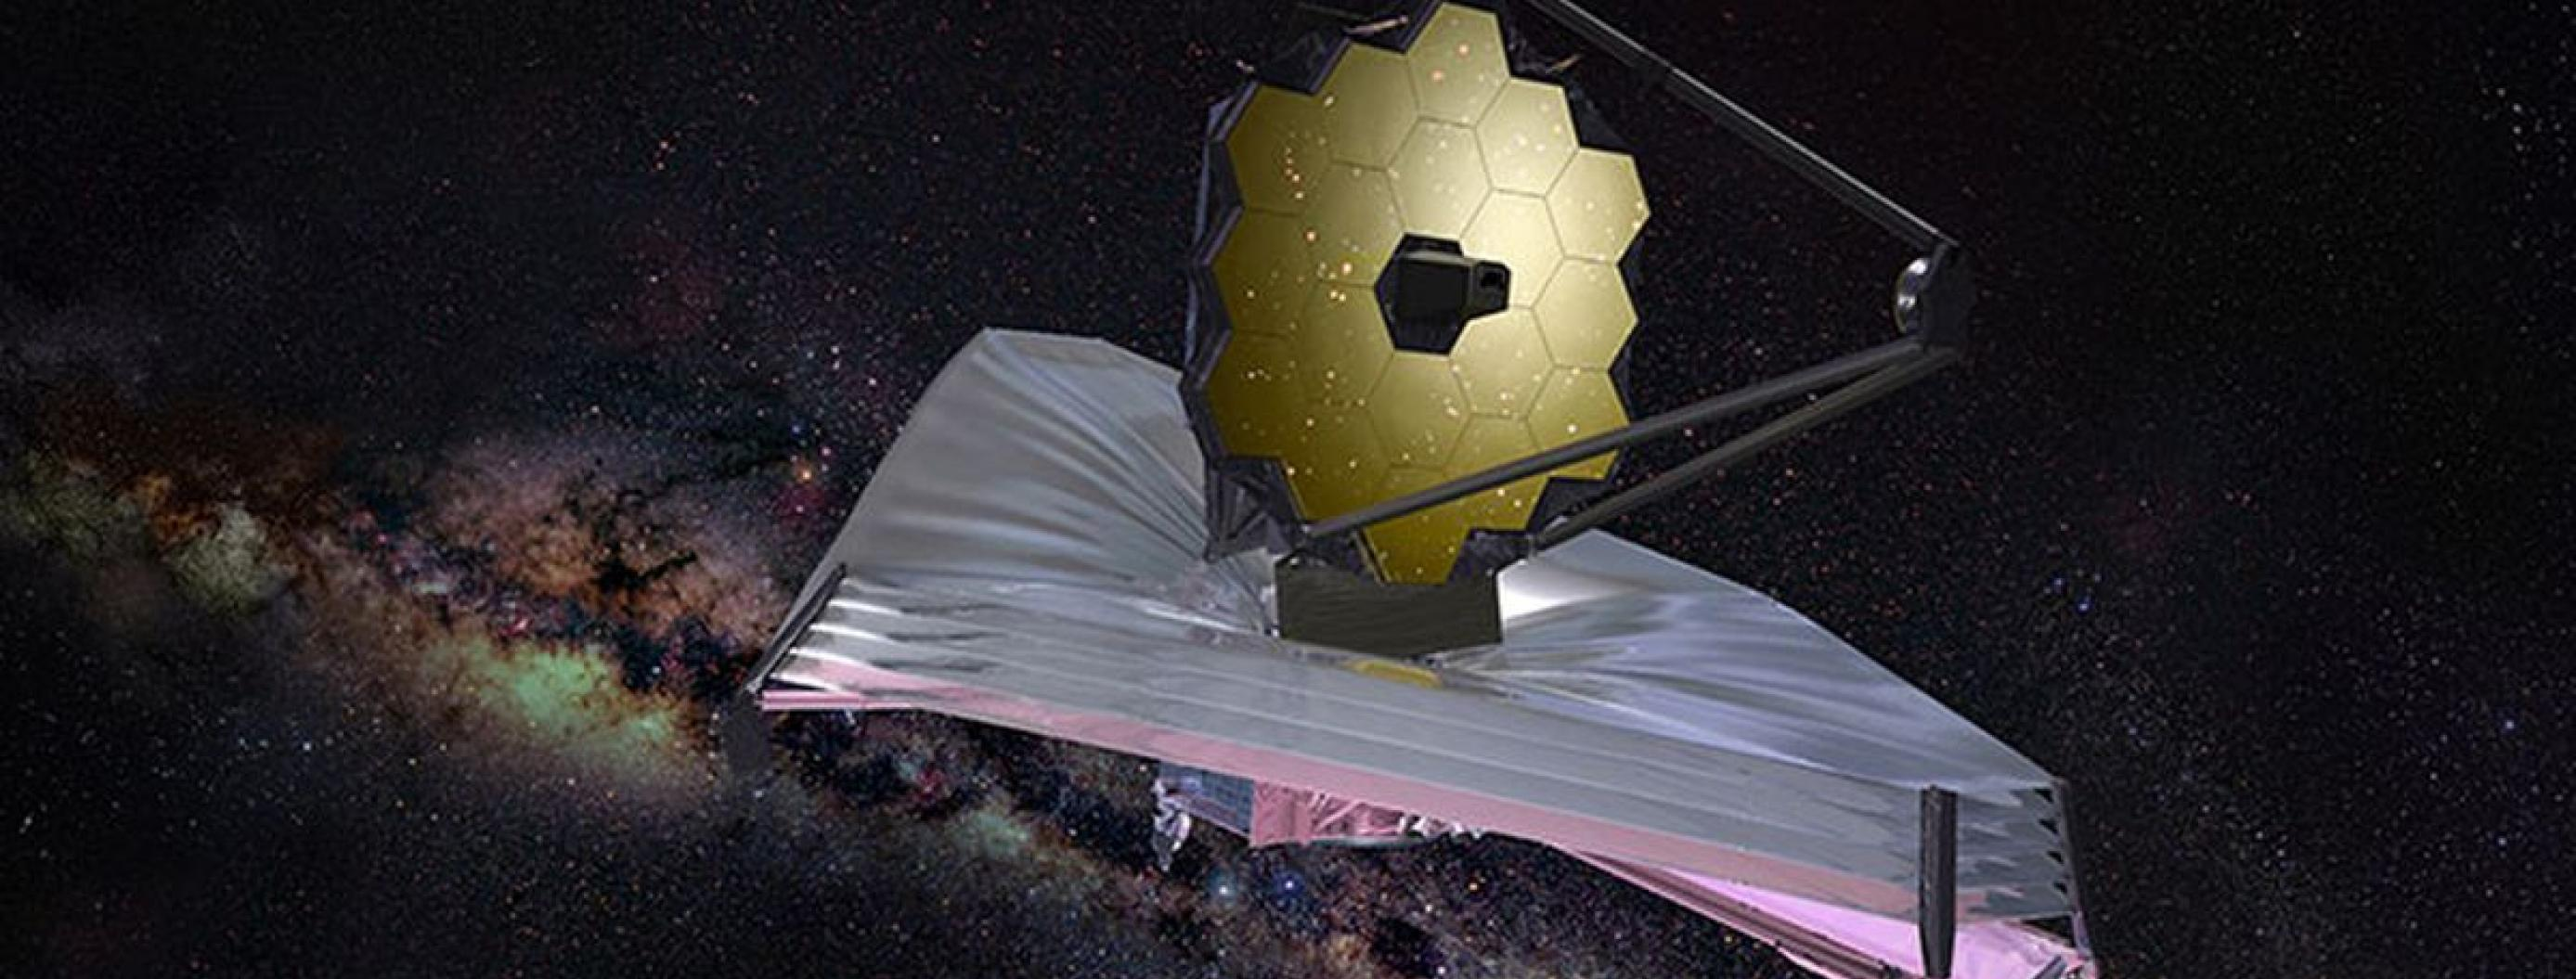 New Space Telescope Needed in Order to Search for Alien Life